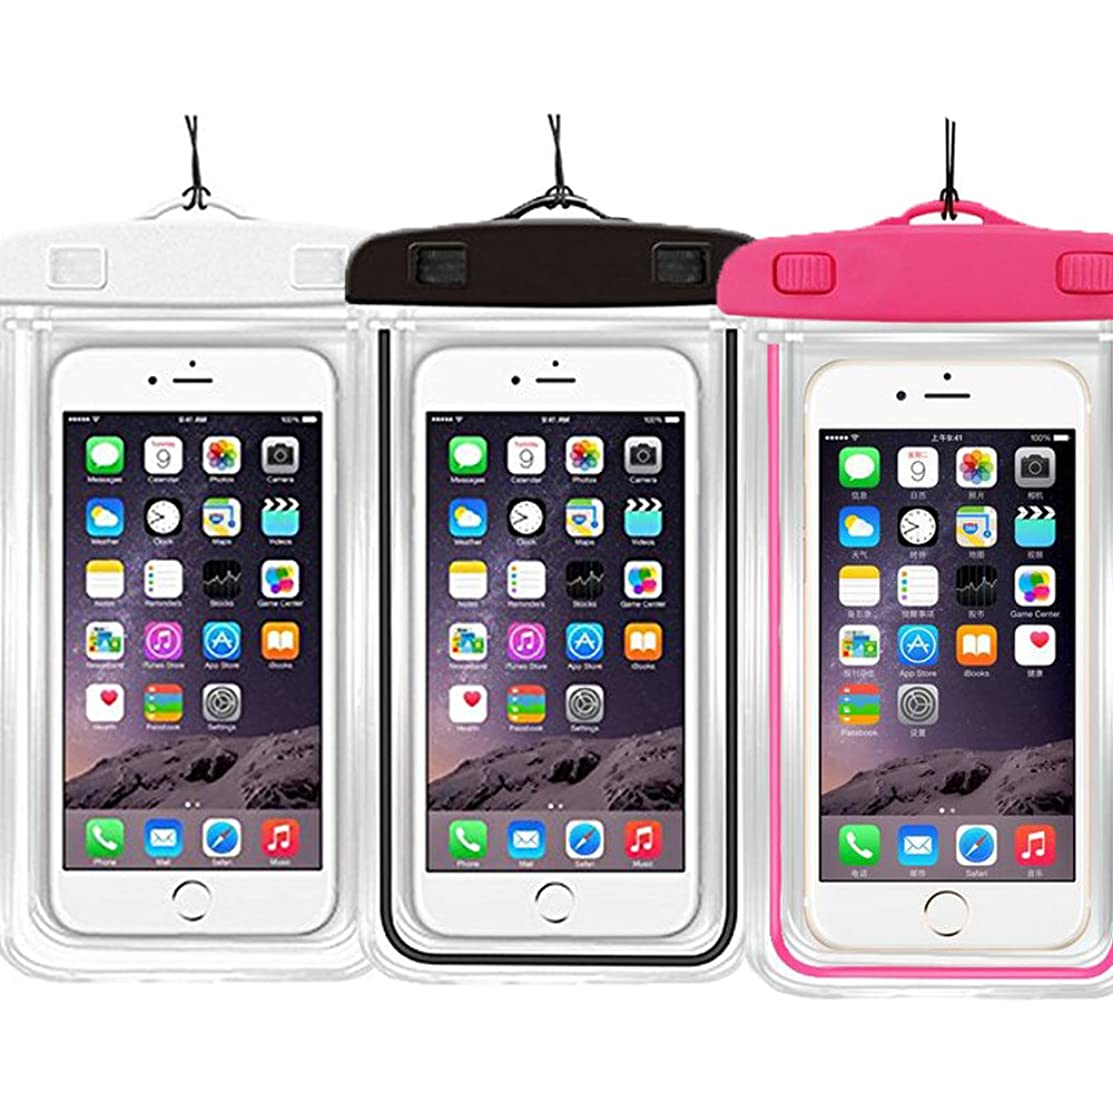 [3PACK] Waterproof Case Universal CellPhone Dry Bag Pouch CaseHQ for Apple iPhone 8,8plus,7,7plus,6s, 6, 6S Plus, SE, 5S, Samsung Galaxy s8,s8plus,S7, S6 Note 5 4,HTC LG Sony Nokia up to 5.8